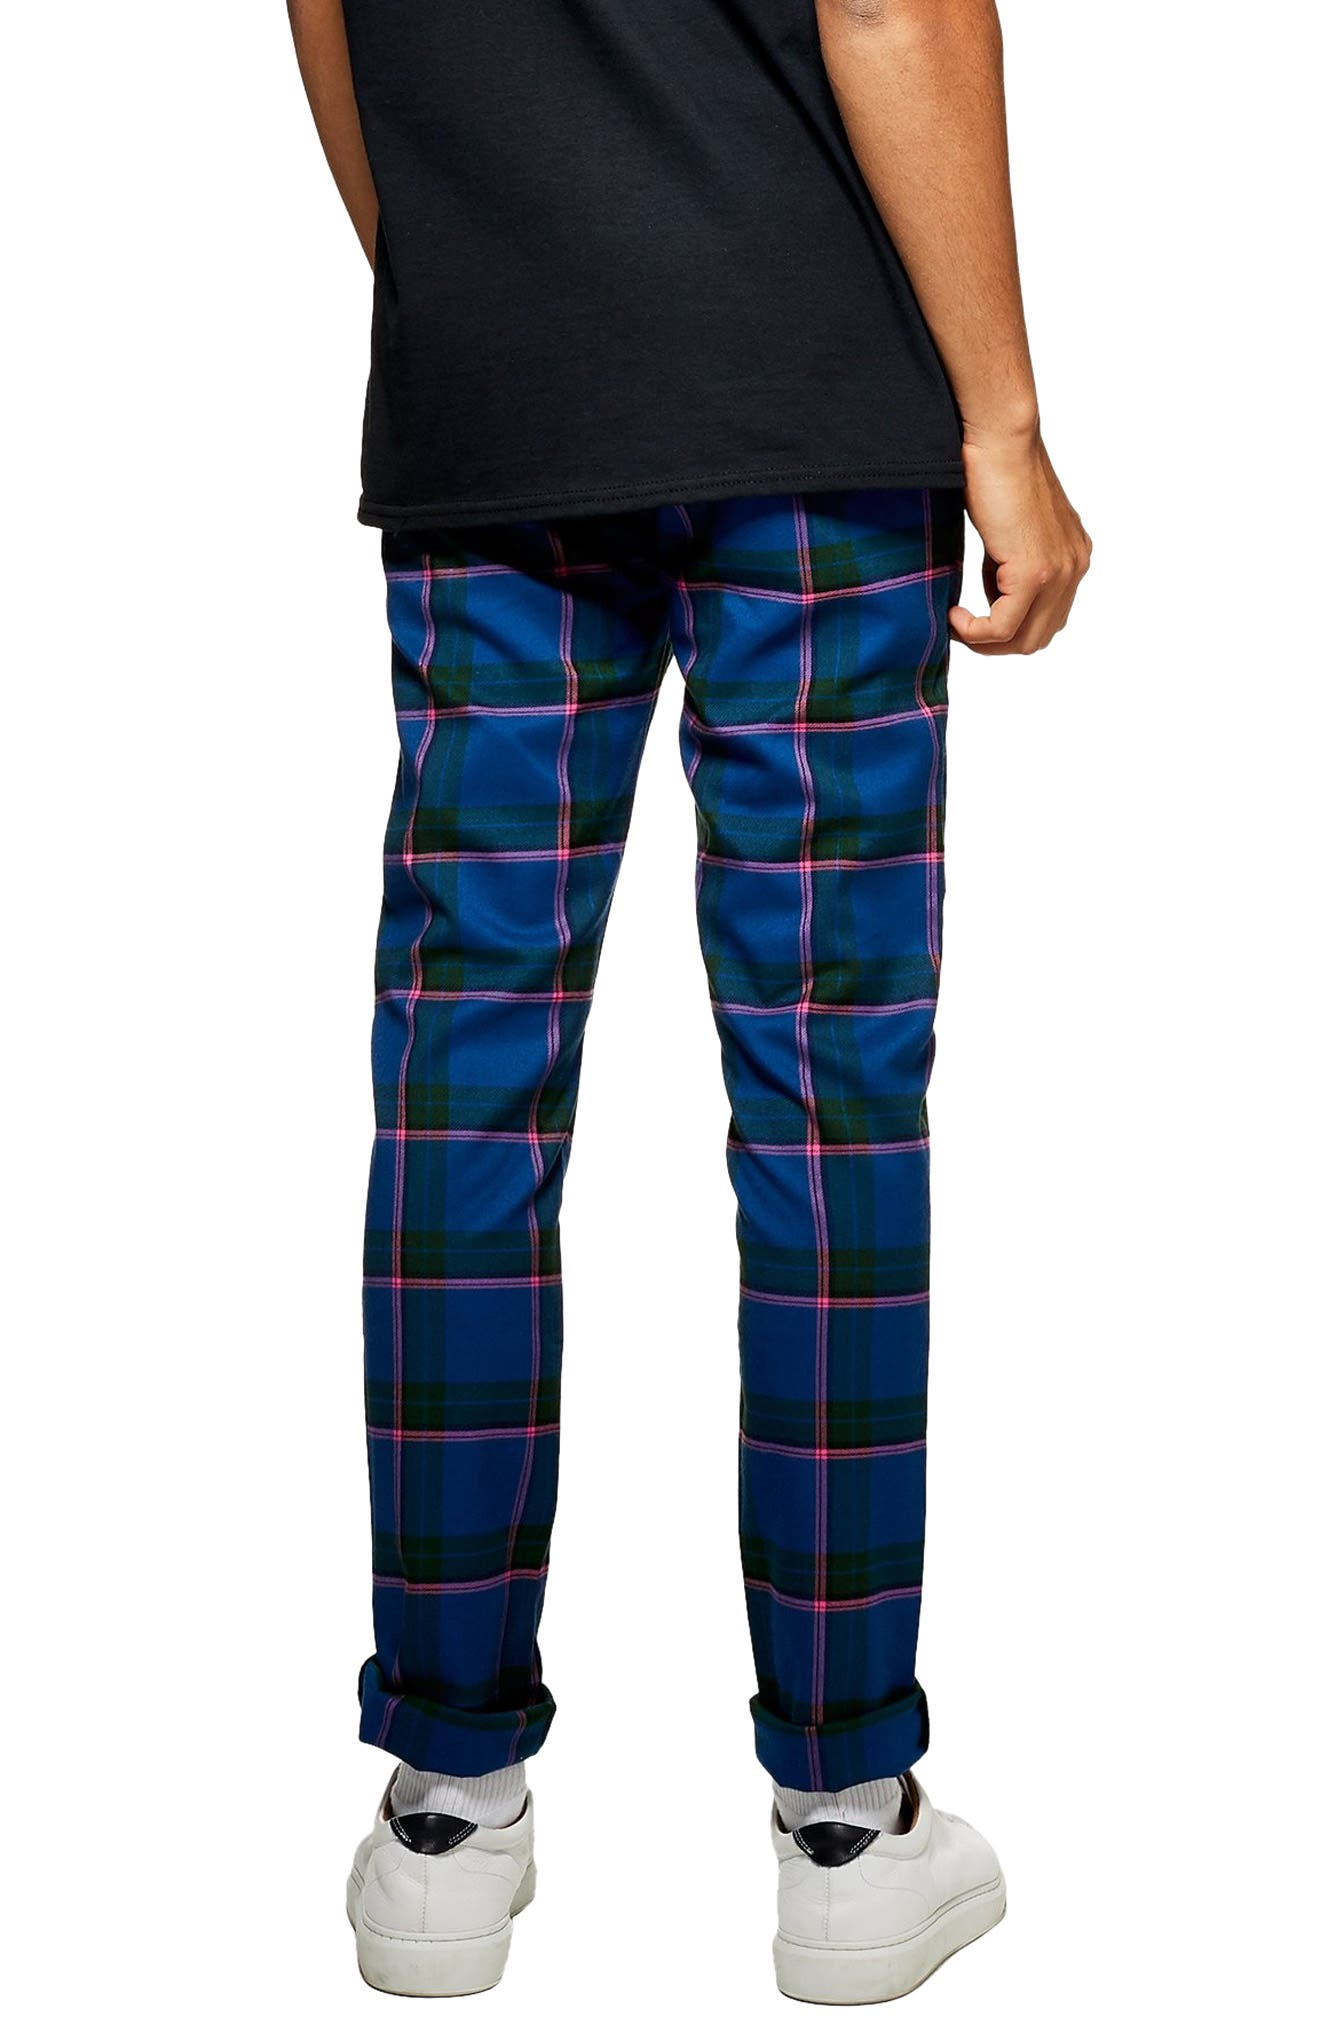 Mitchell Check Print Skinny Pants,                             Alternate thumbnail 2, color,                             400